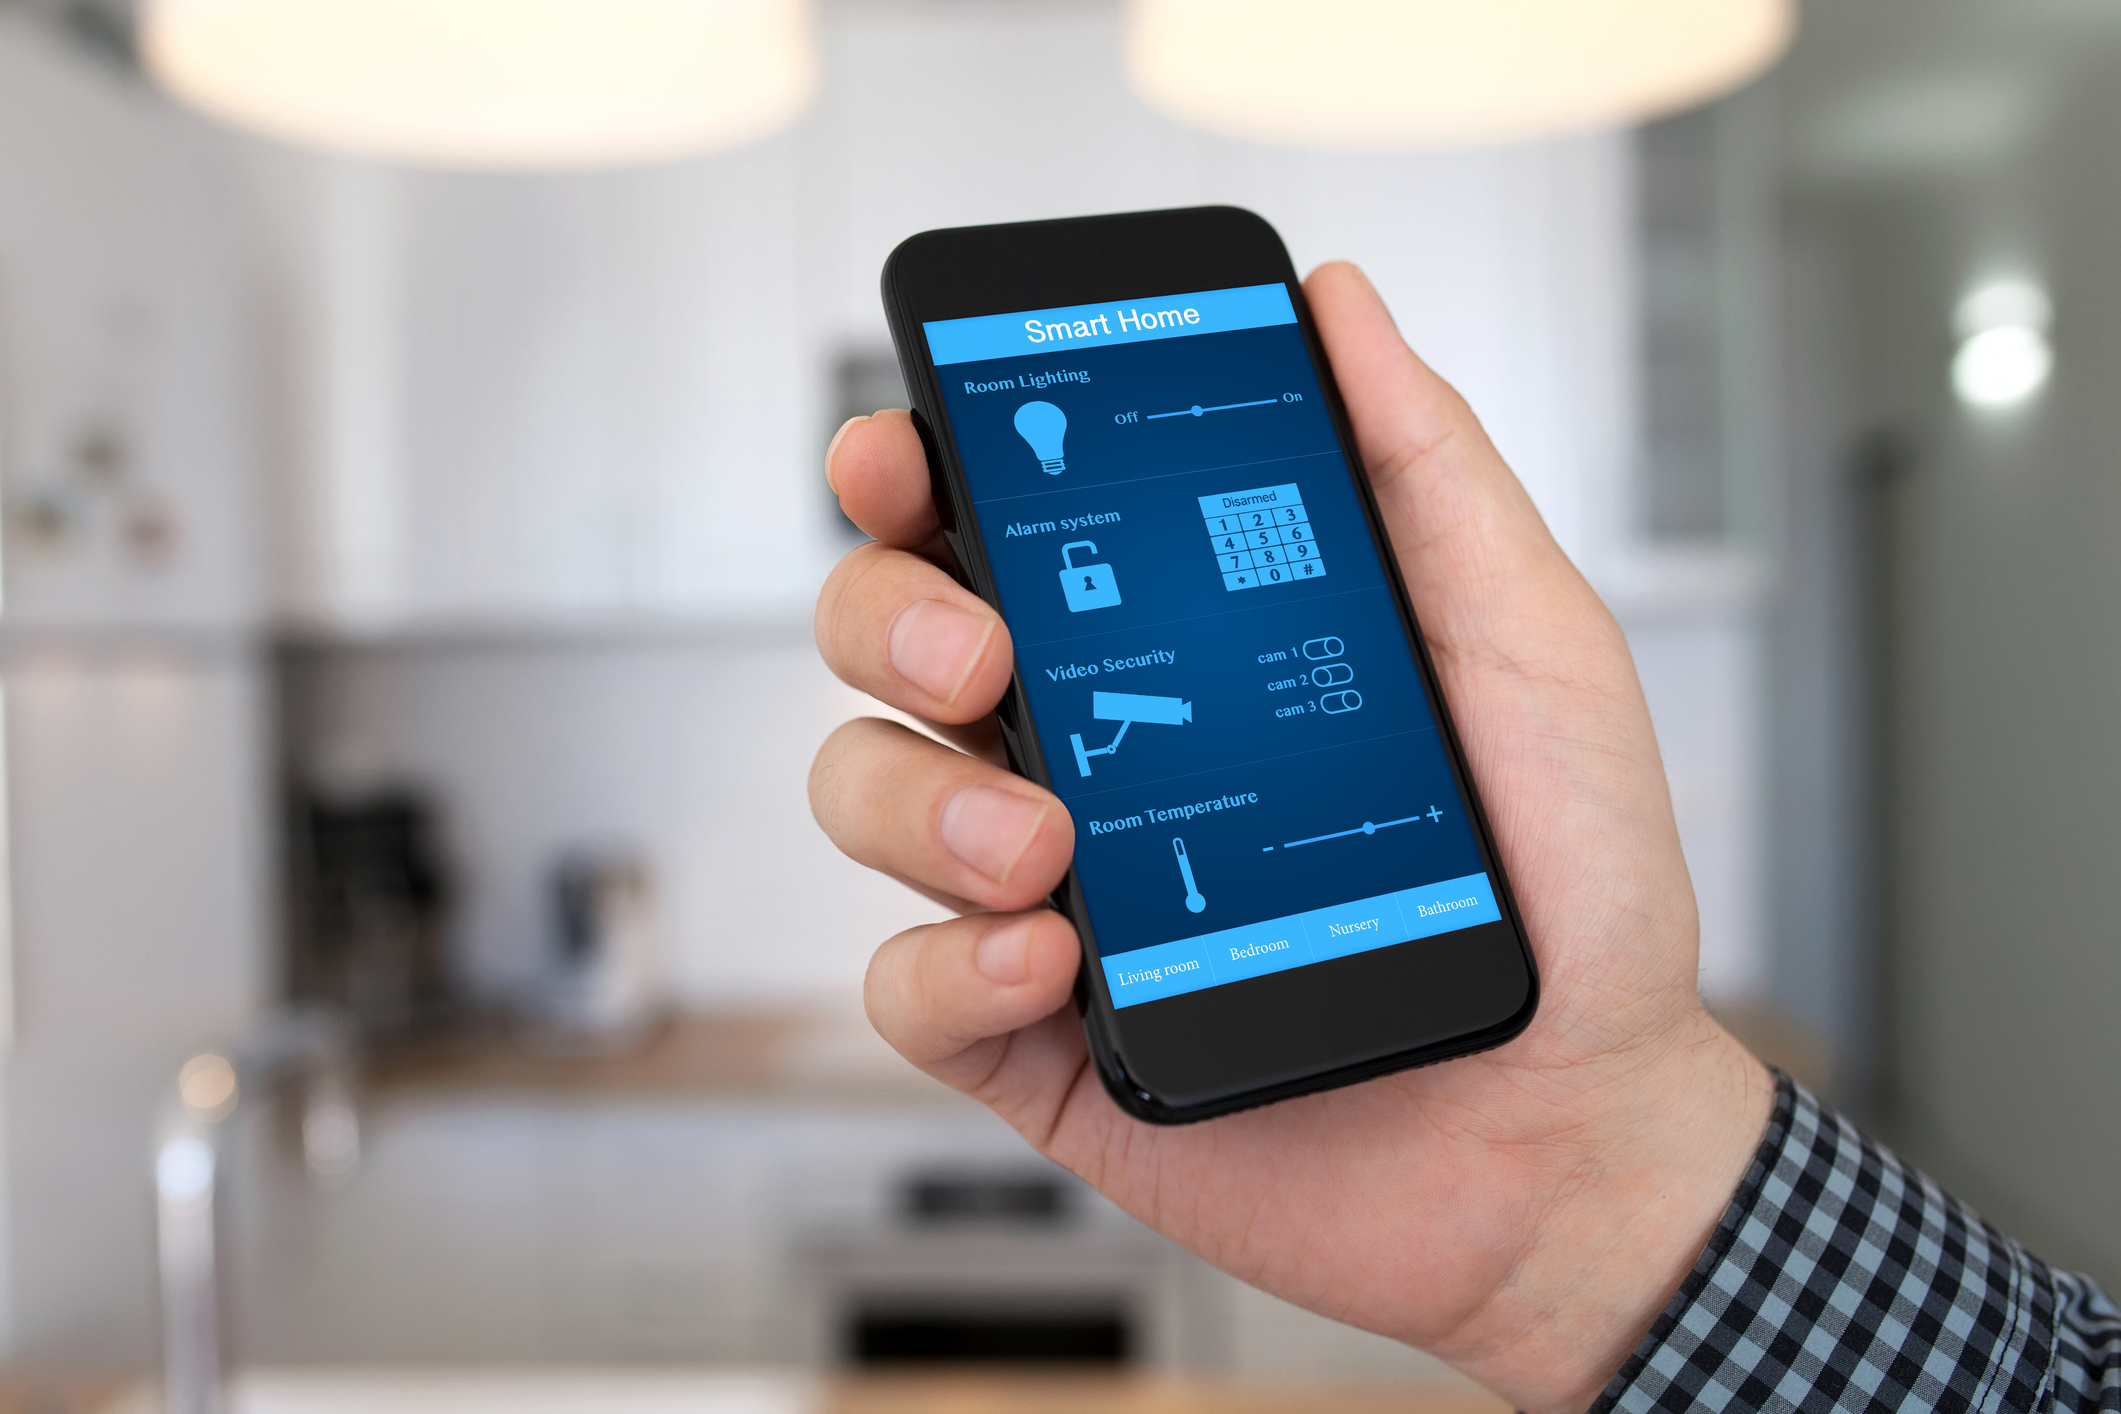 Smart phone smart home networked Coldwell Banker Paradise